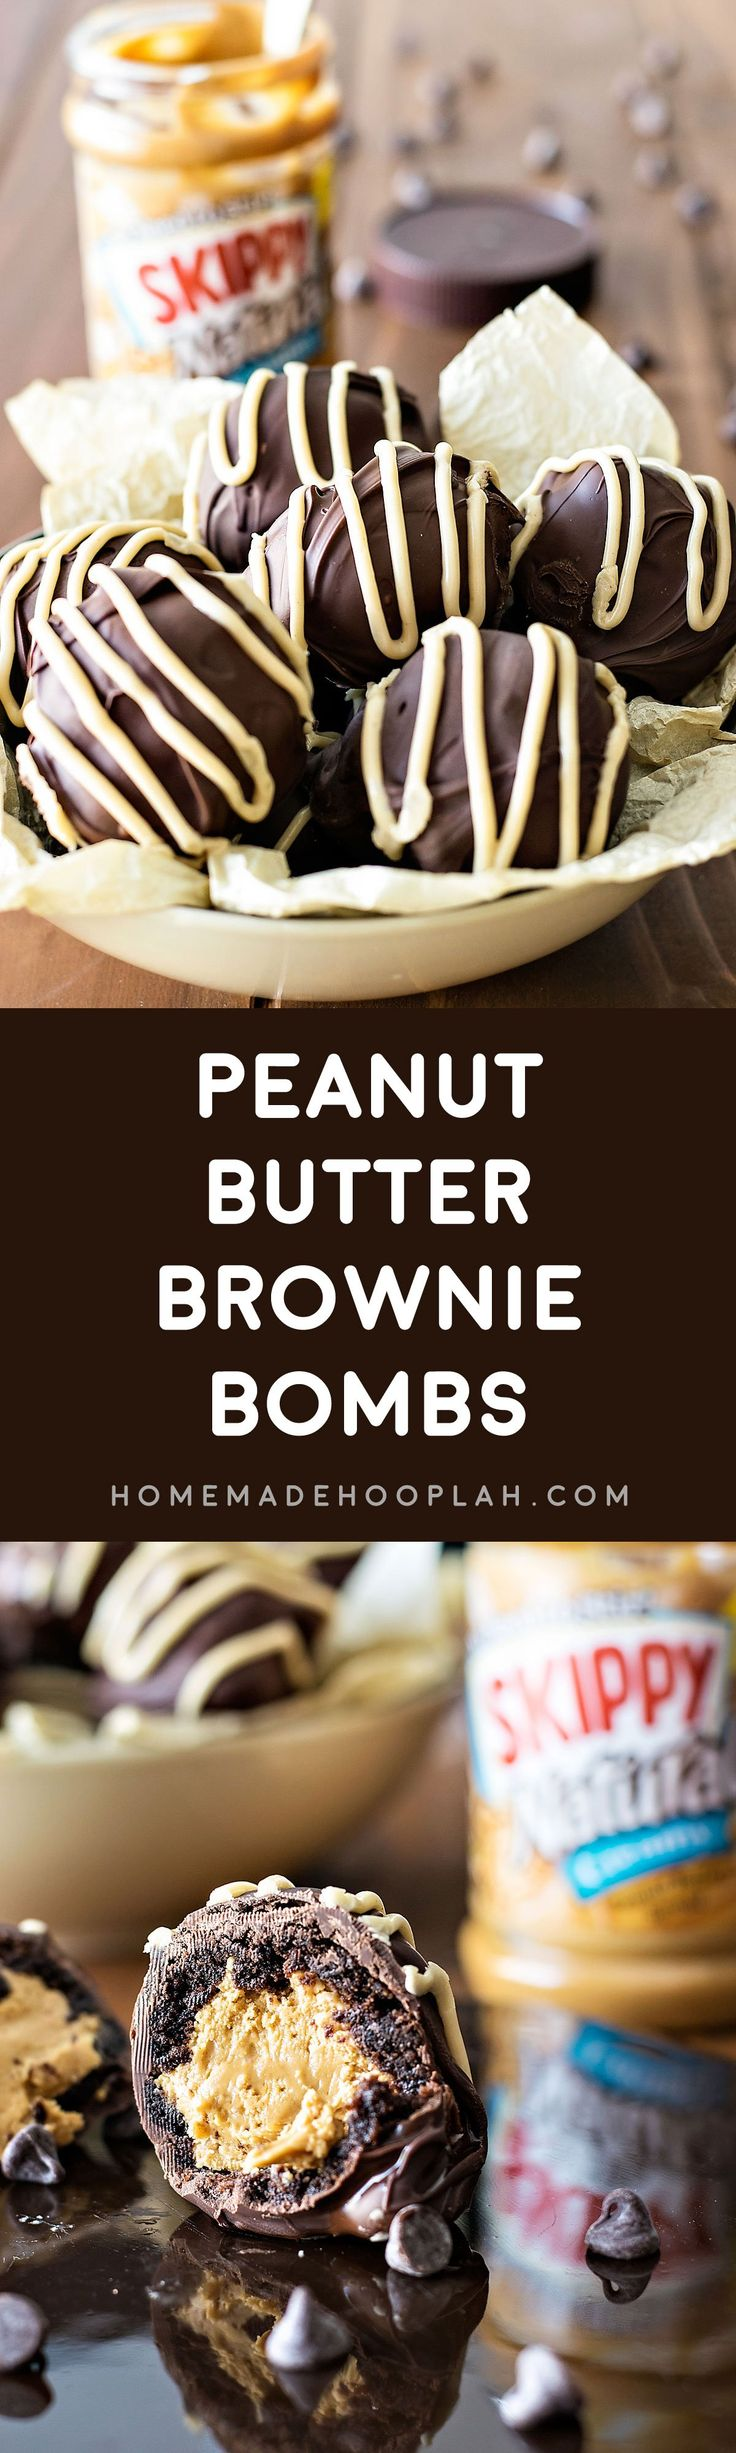 Peanut Butter Brownie Bombs! These peanut butter brownie bombs are perfect for all occasions and celebrations! Rich brownies filled with SKIPPY® peanut butter and covered with chocolate and peanut butter royal icing. | HomemadeHooplah.com #SKIPPYYIPPEE #spon